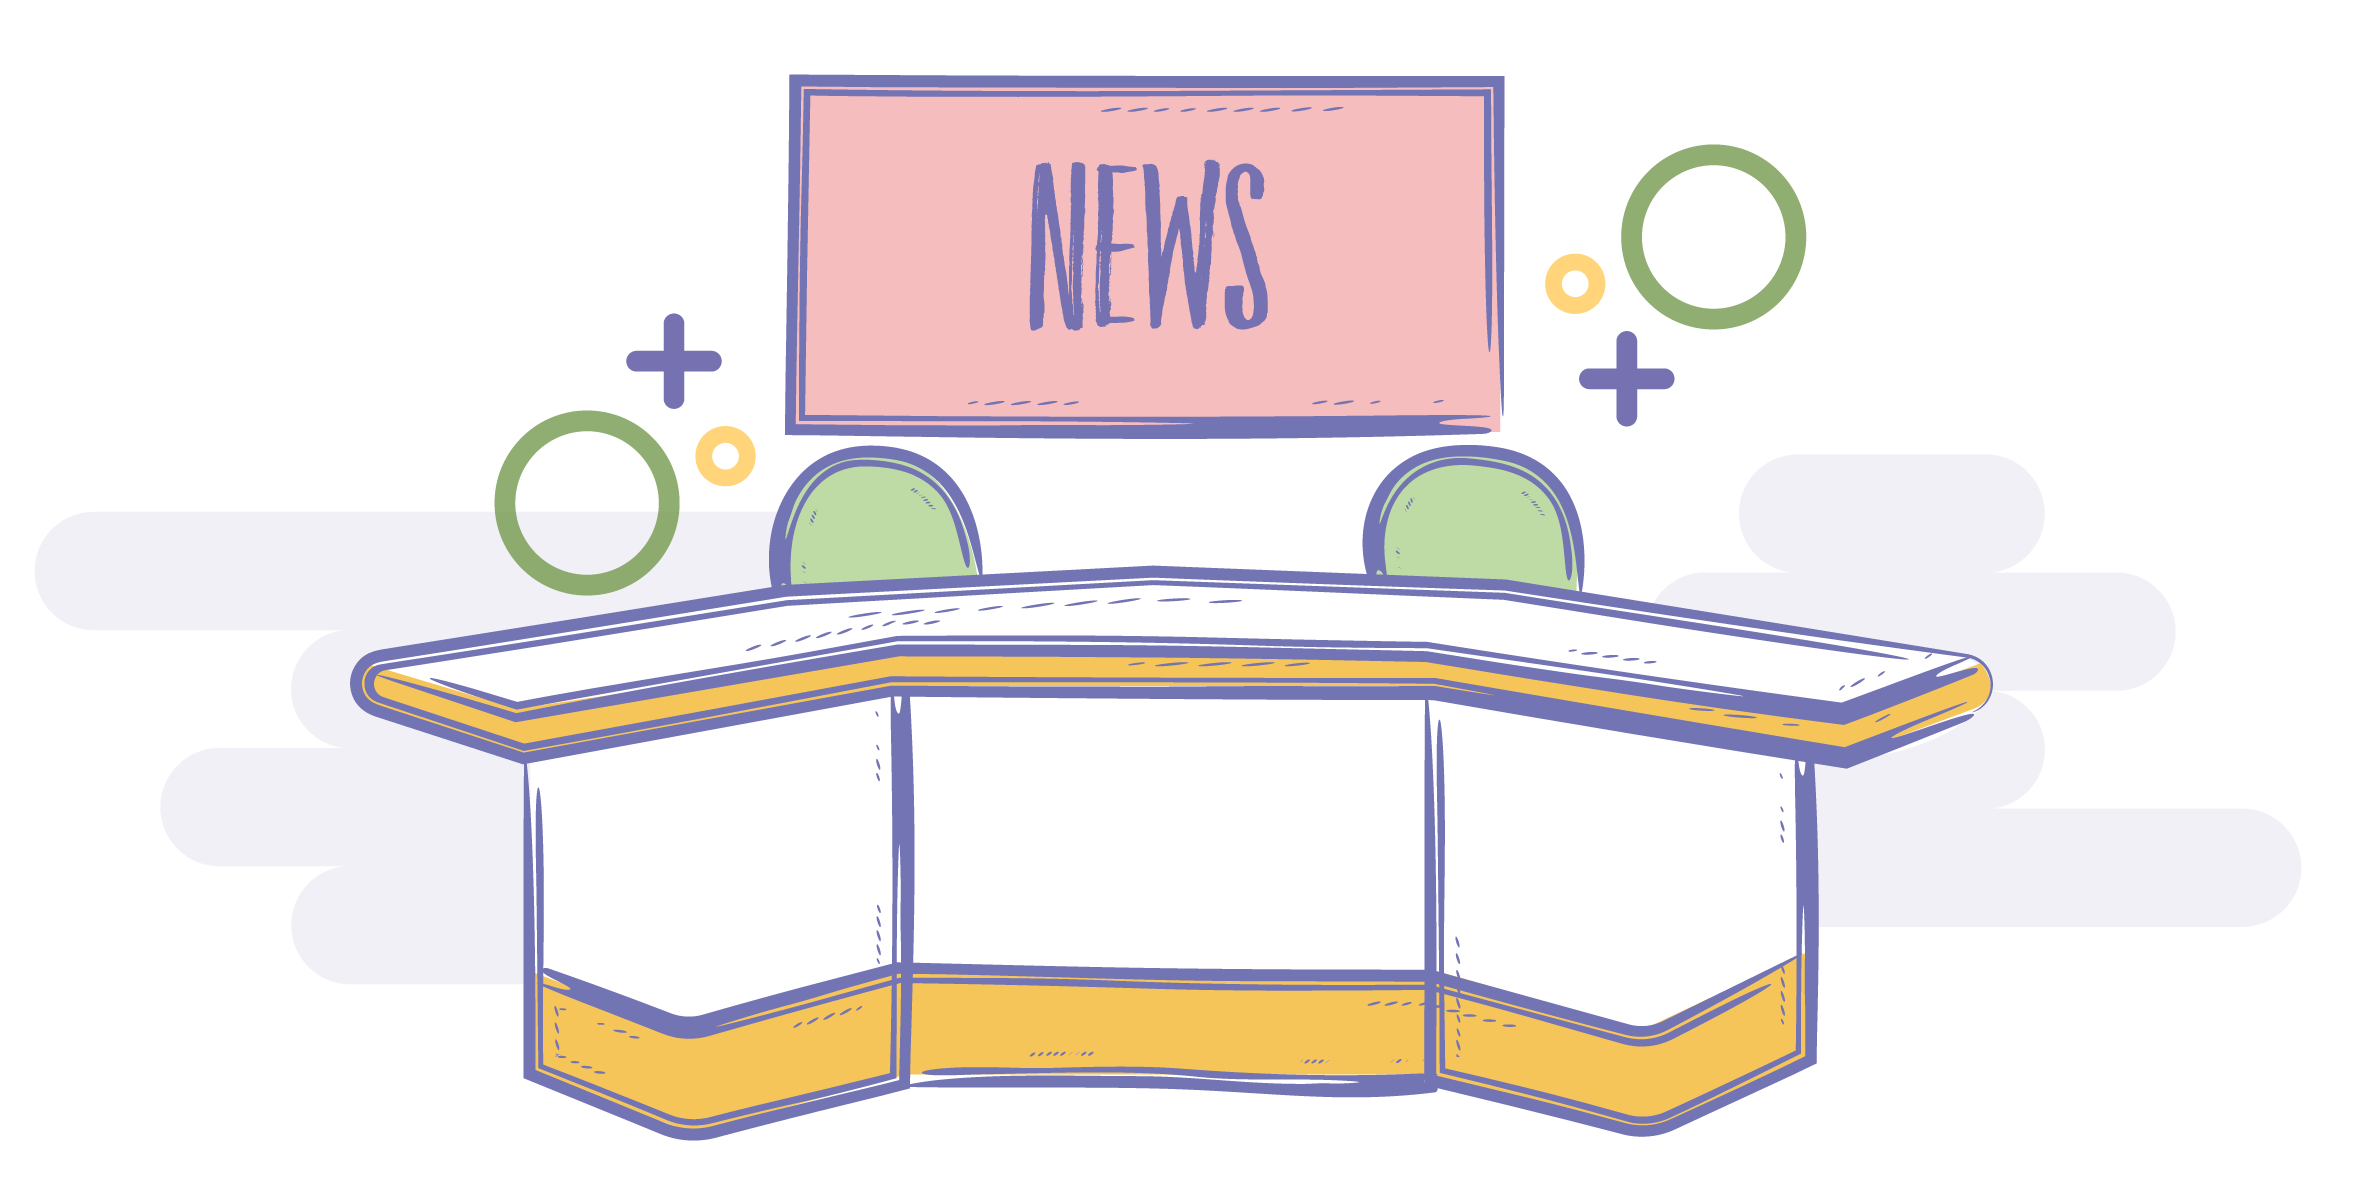 Who we are newsroom. News clipart line